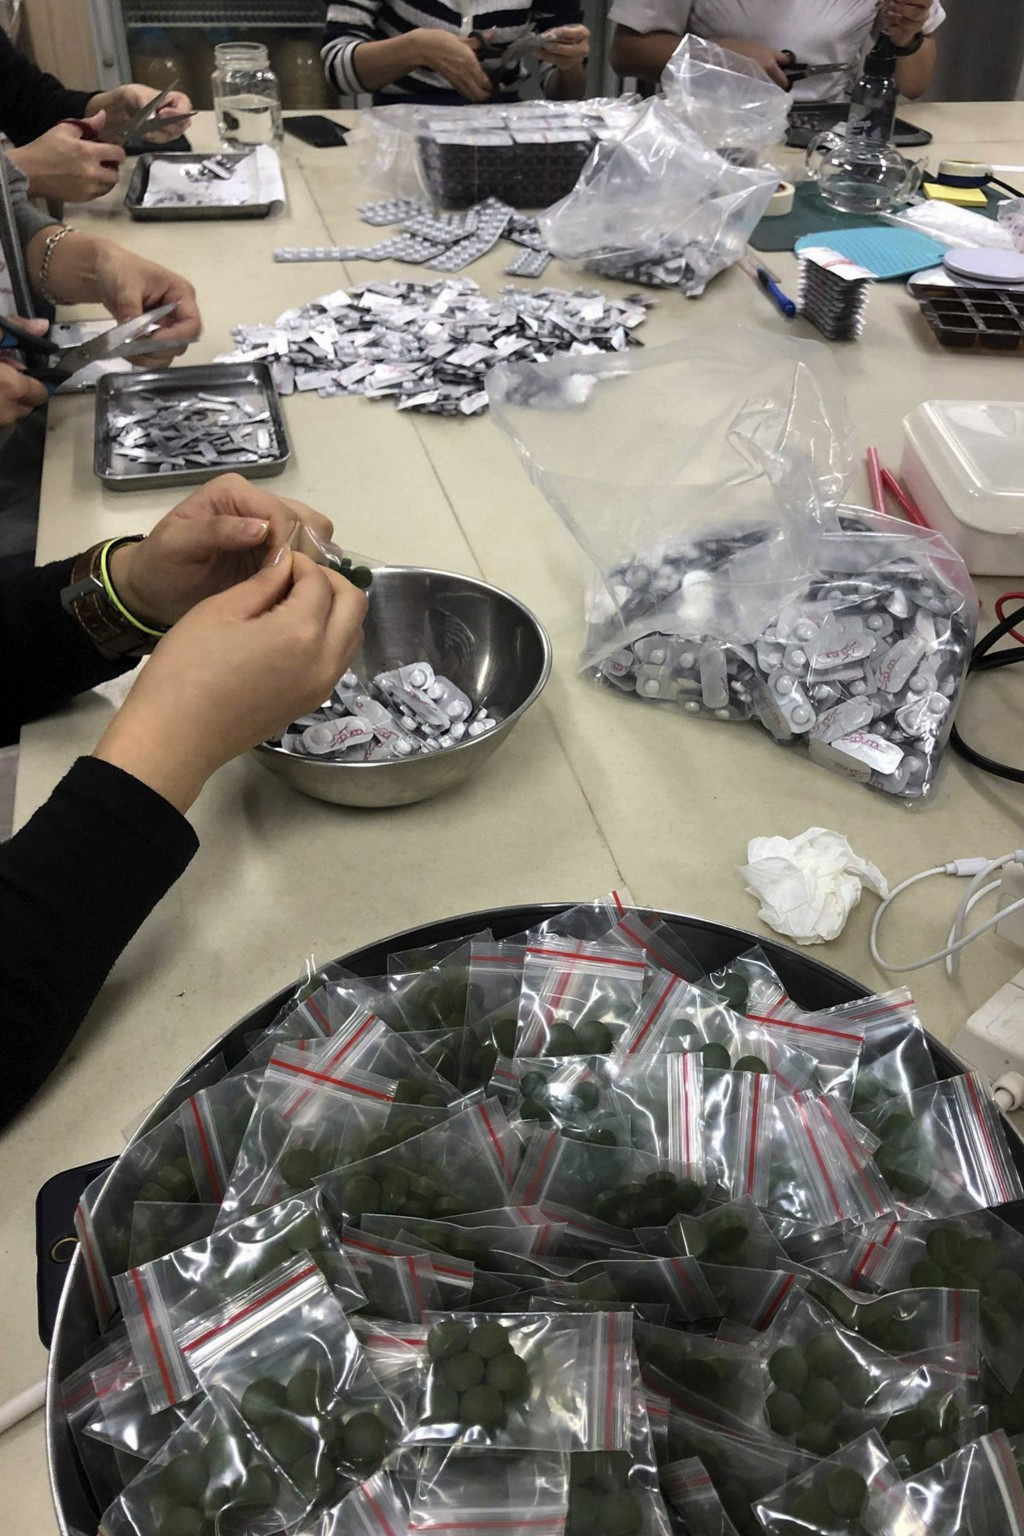 FILE - In this Sunday, Dec. 1, 2019, photo, workers pack multi-colored supplement pills in small resealable bags at an industrial building in Hong Kon...